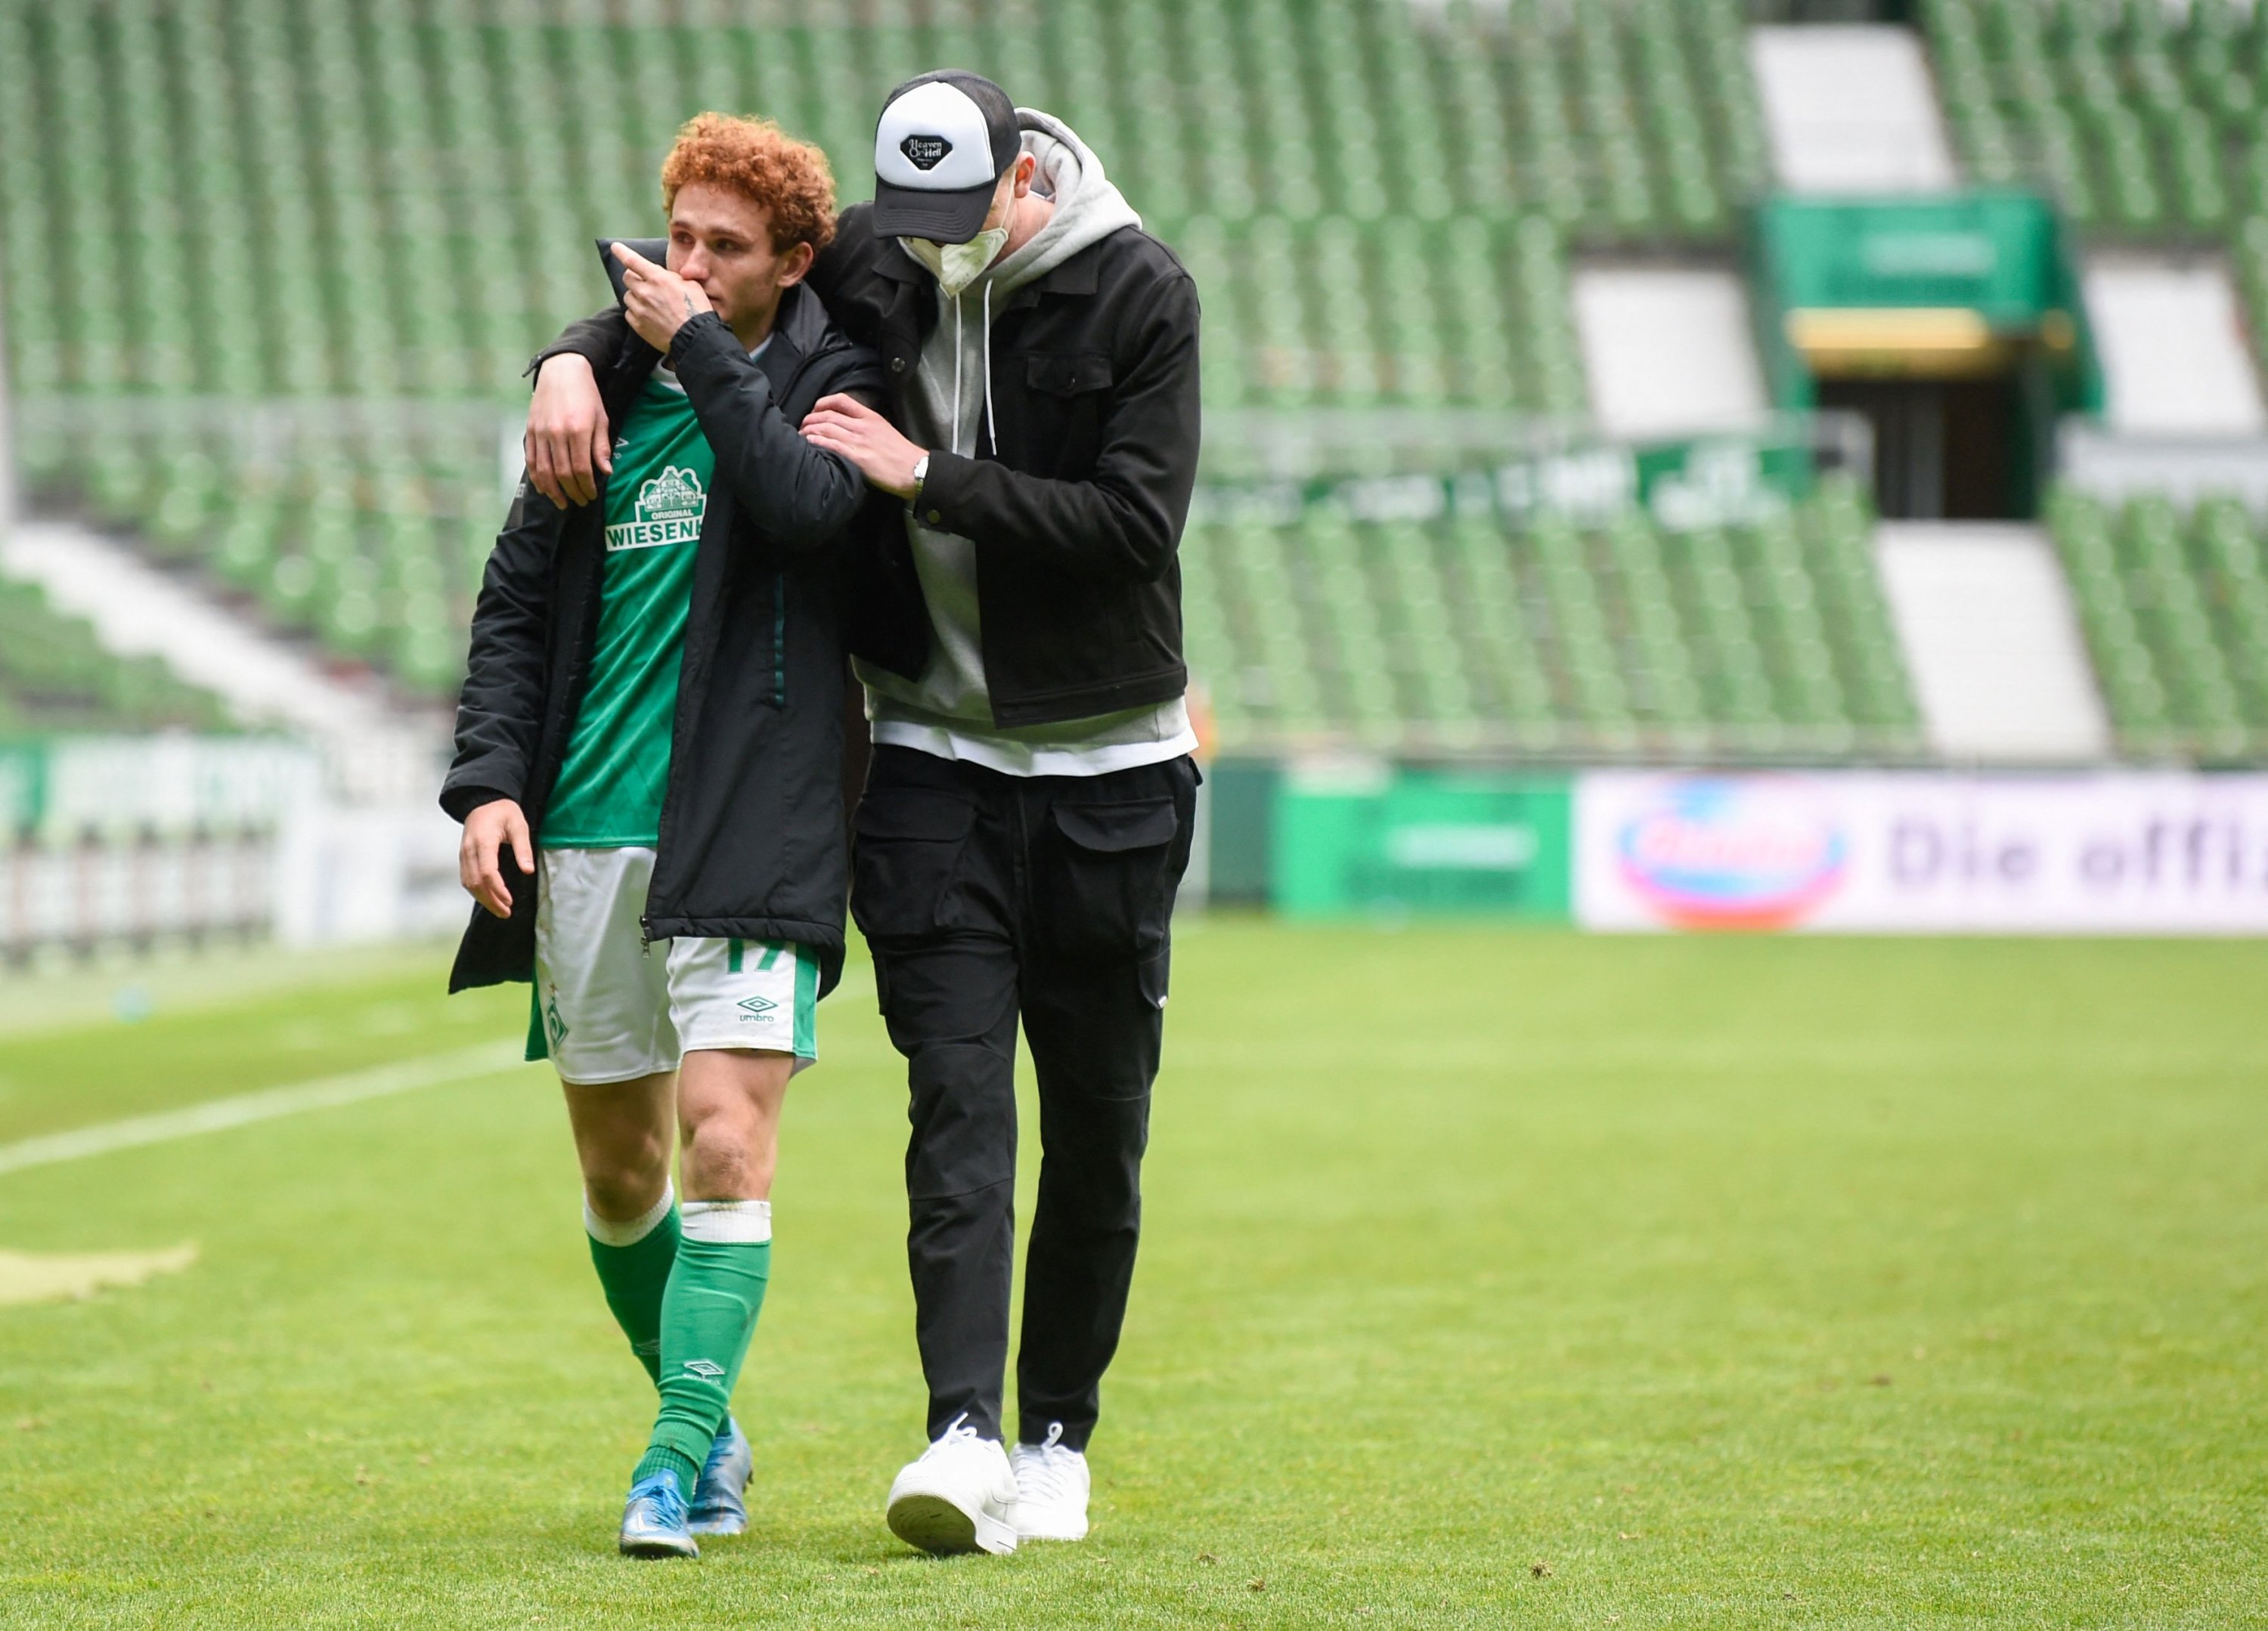 Werder Bremen's U.S. forward Joshua Sargent (L) is comforted by a team member as they leave the pitch after the German first division Bundesliga football match Borussia Monchengladbach in Bremen, Germany, May 22, 2021. (AFP Photo)